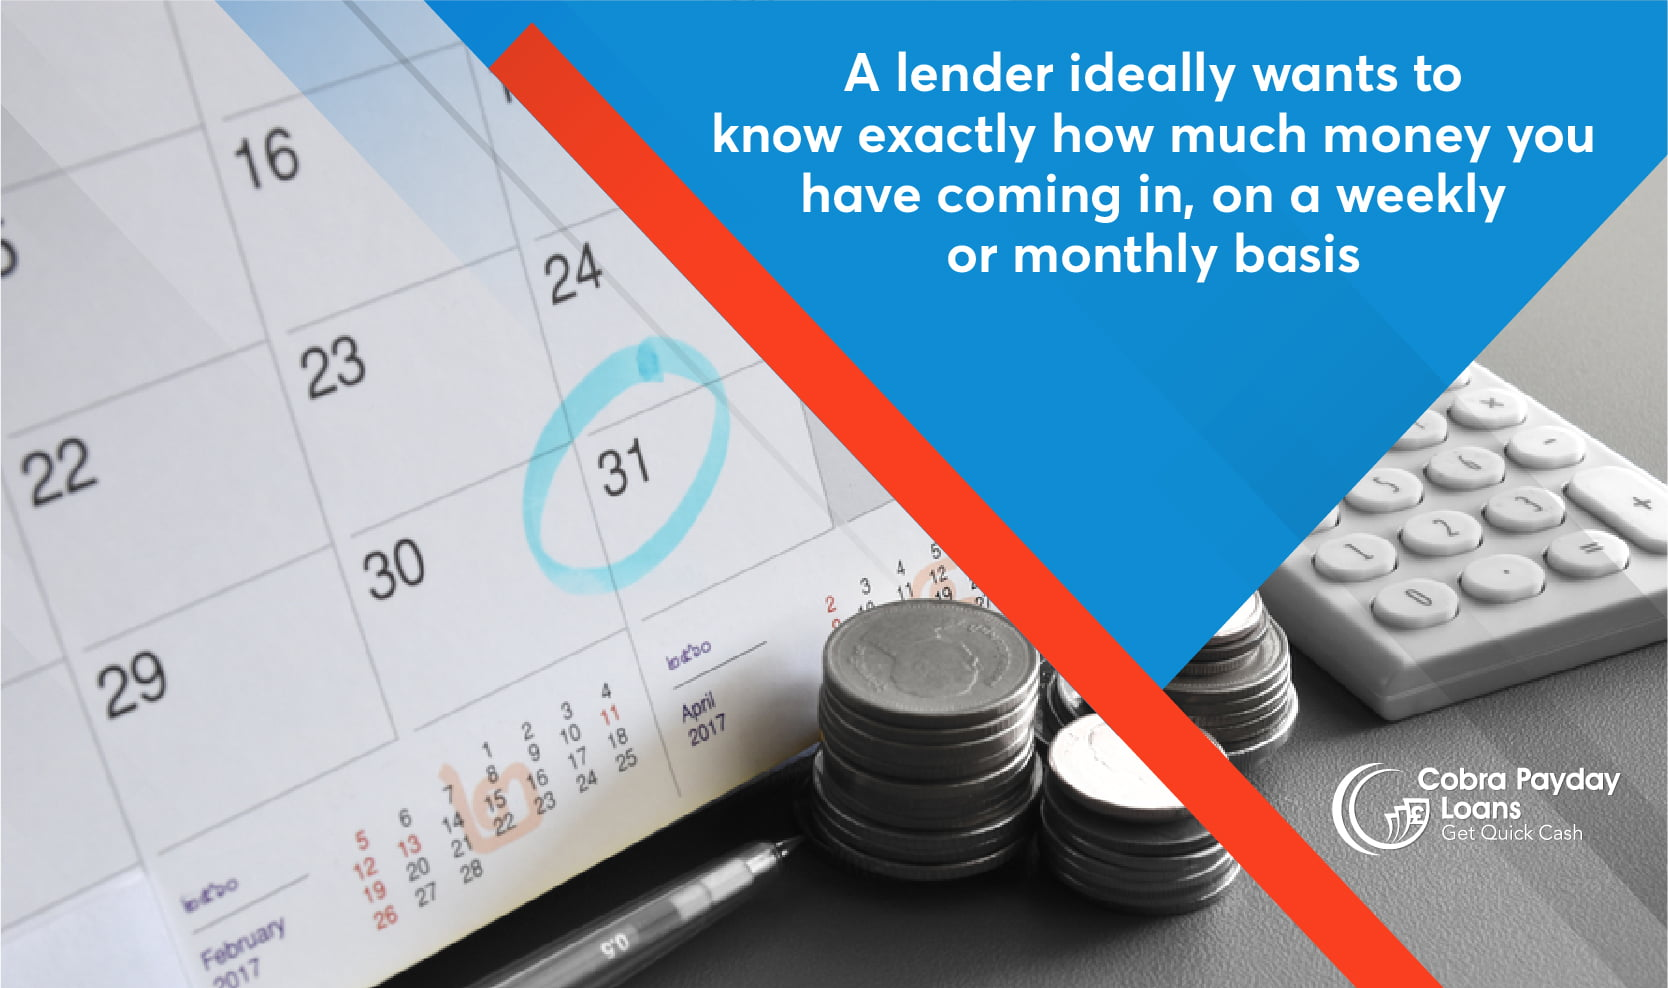 A lender ideally wants to know exactly how much money you have coming in, on a weekly or monthly basis